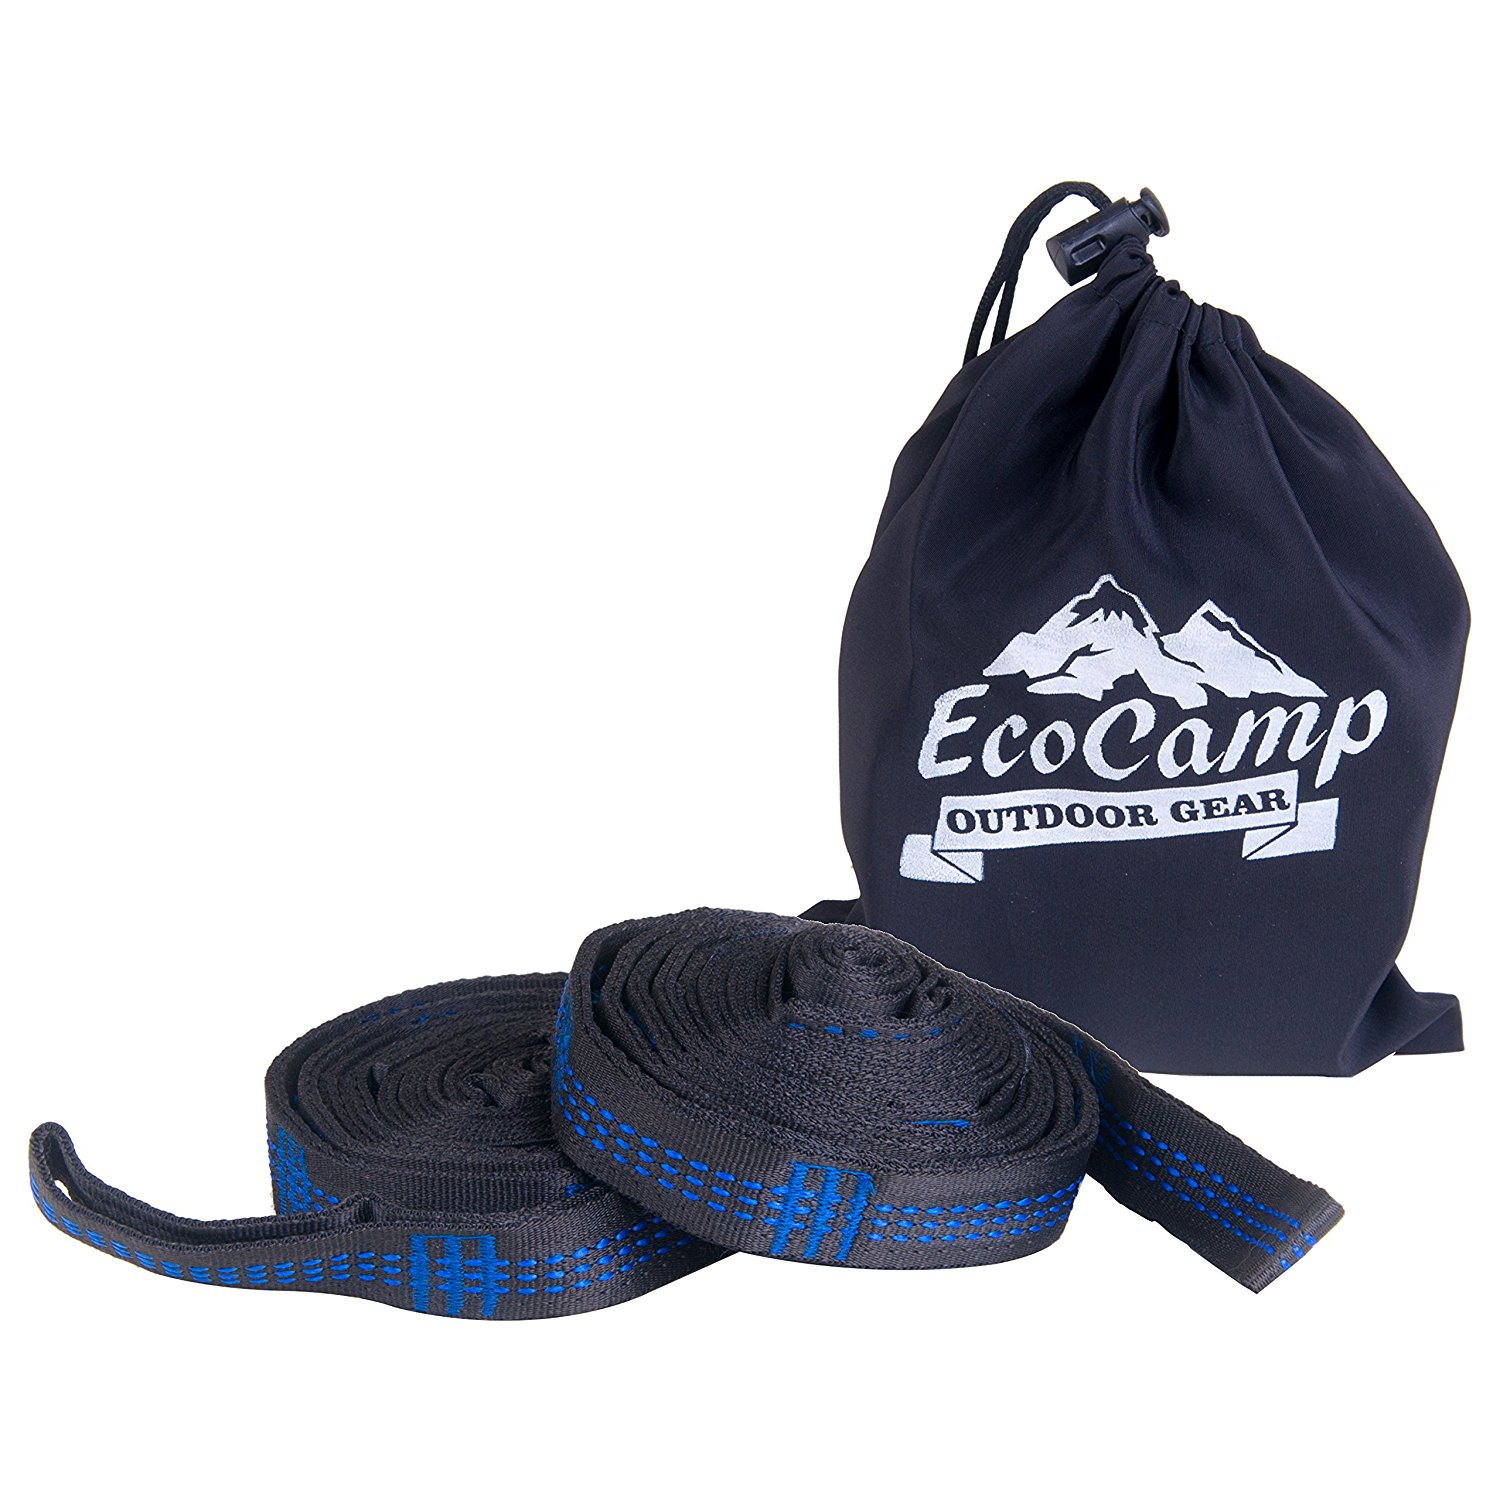 EcoCamp Outdoor Gear Tree Straps – XL Hammock Straps – Each Strap is 10FT, 18 + 1 Loops, 1000 LBS – Unyielding and Enduring XL Hammock Tree Straps- Long, No Stretch, Heavy Duty Outdoor Tree Straps